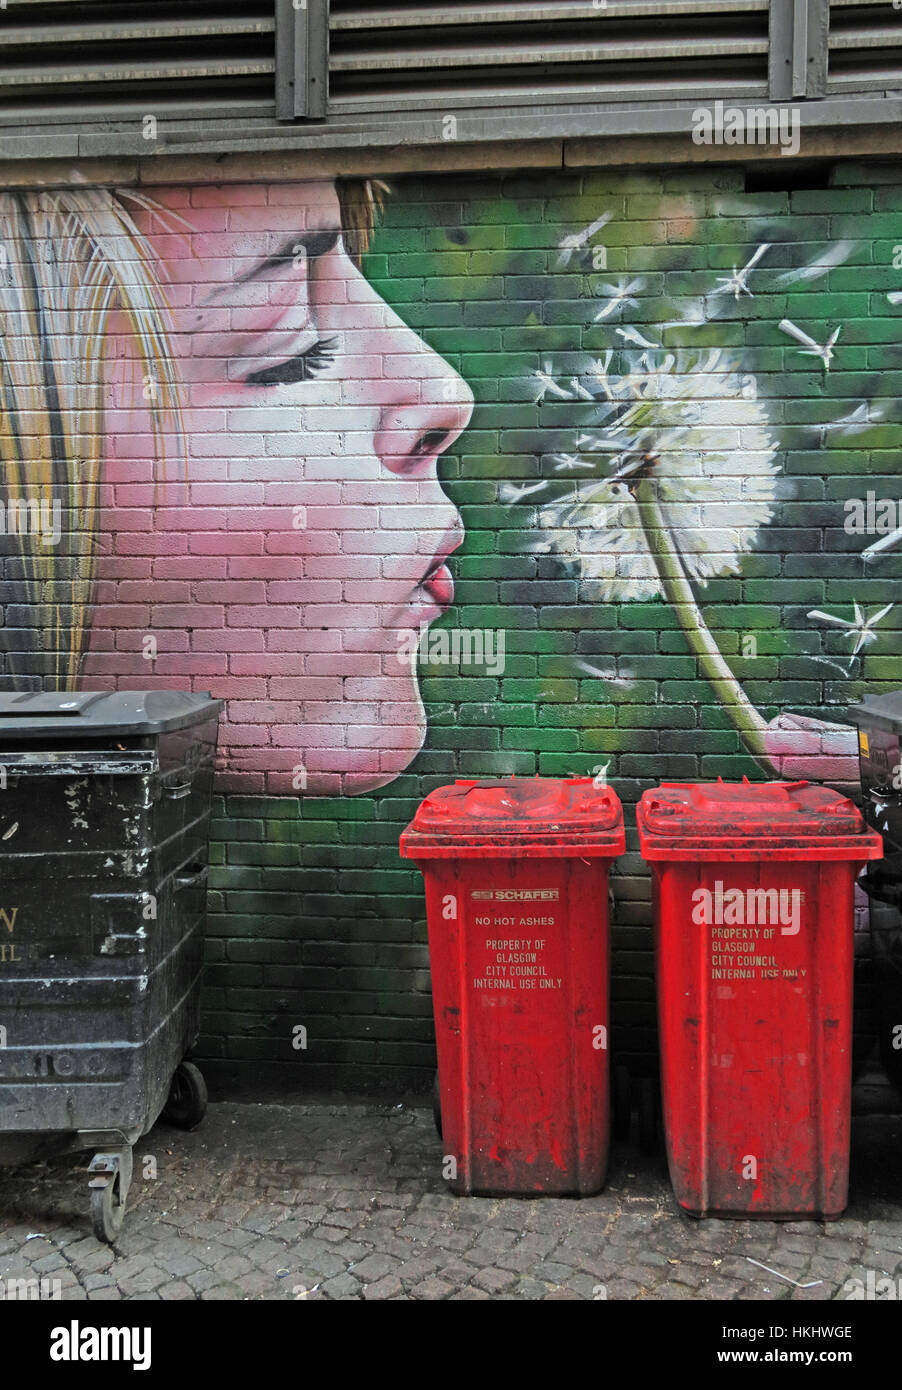 waste,Flower,dandelion,red,red bins,art,urban art,lips,face,blond,blond girl,recycling,recycle,Glasgow City Council,GoTonySmith,Scottish,collections,wheelie bins,wheeliebins,Pano,panorama,Glasgow,city,centre,gotonysmith,stairs,arts,artscentre,center